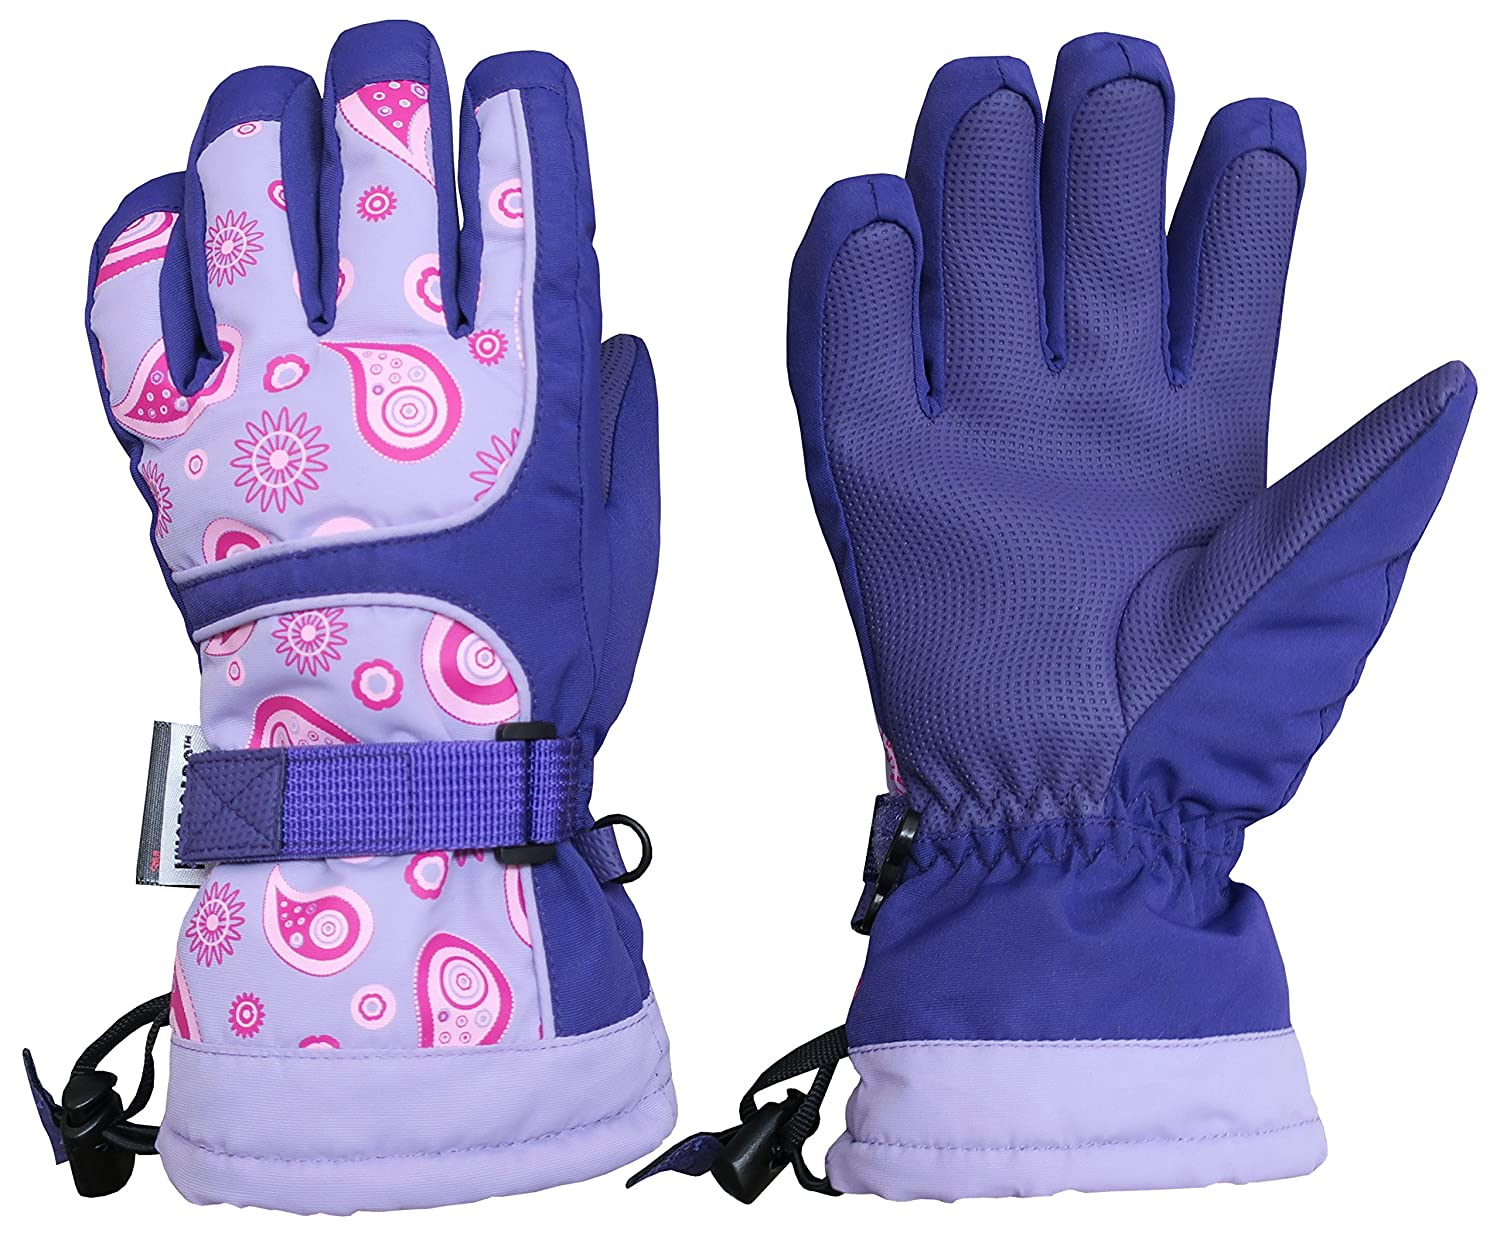 N'Ice Caps Kids Scroll Print Waterproof Thinsulate Insulated Winter Snow Gloves 4976